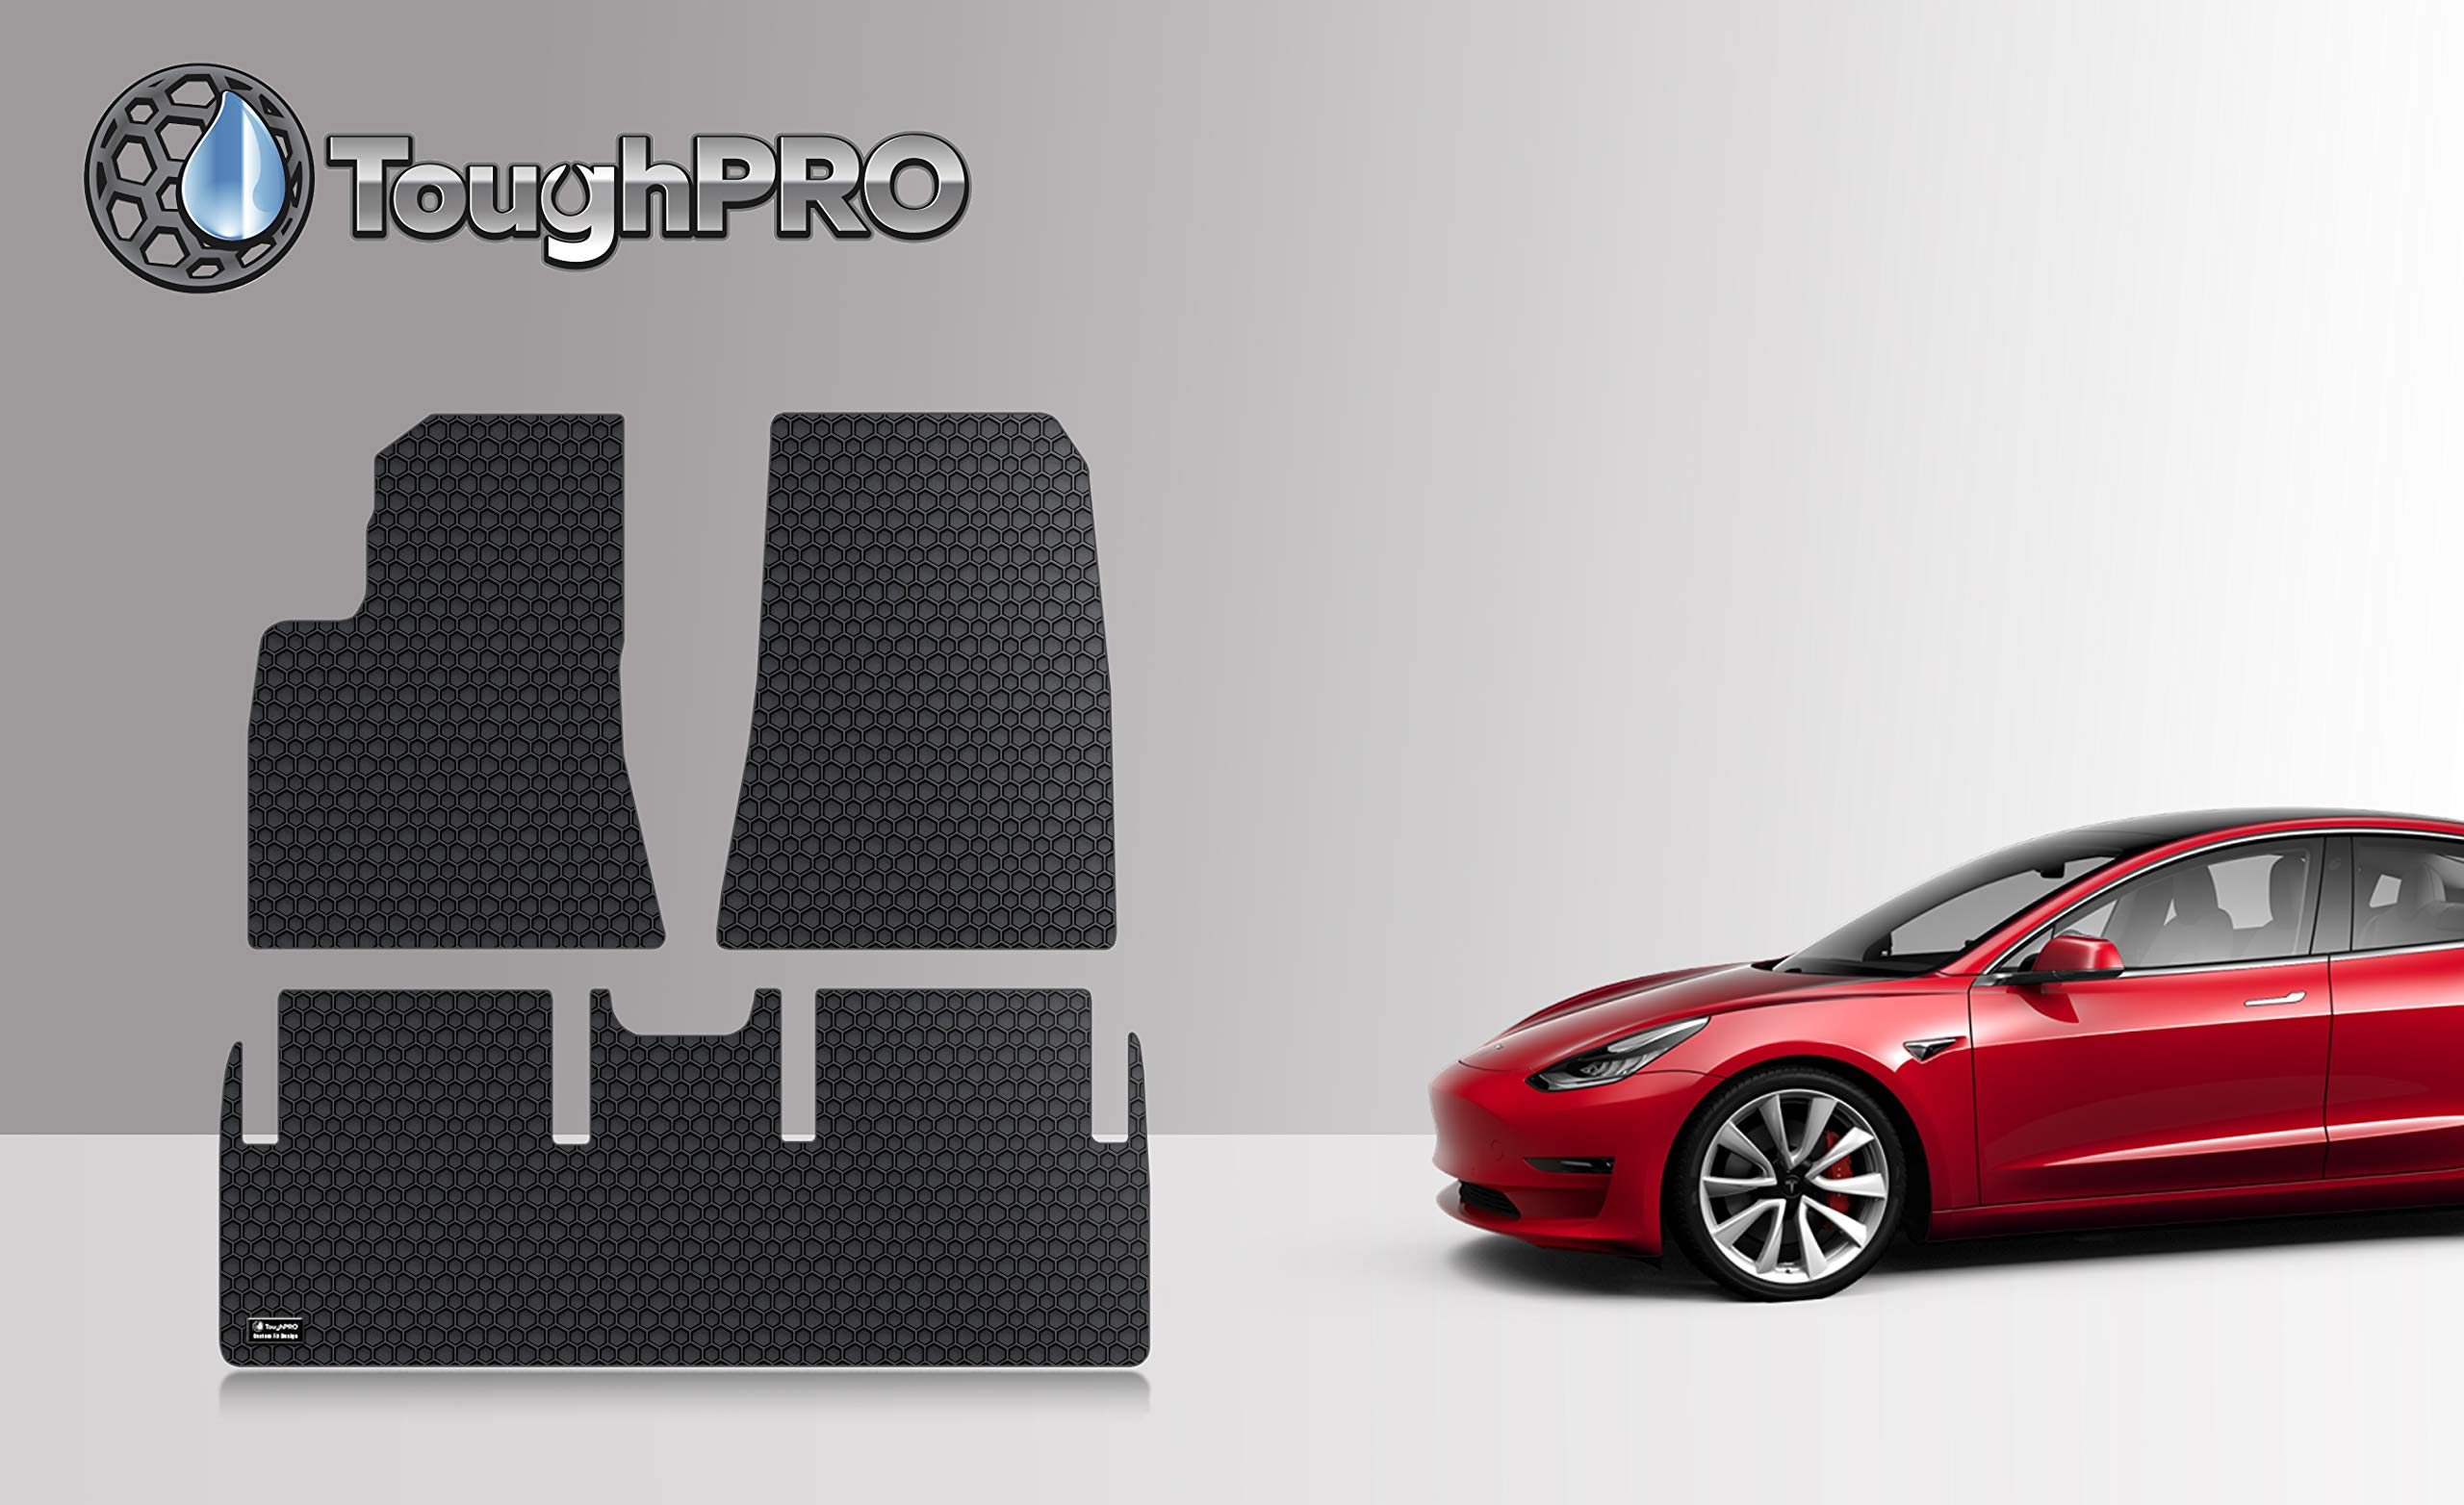 ToughPRO Floor Mats Set (Front Row + 2nd Row) Compatible with Tesla Model 3 - All Weather - Heavy Duty - (Made in USA) - Black Rubber - 2017